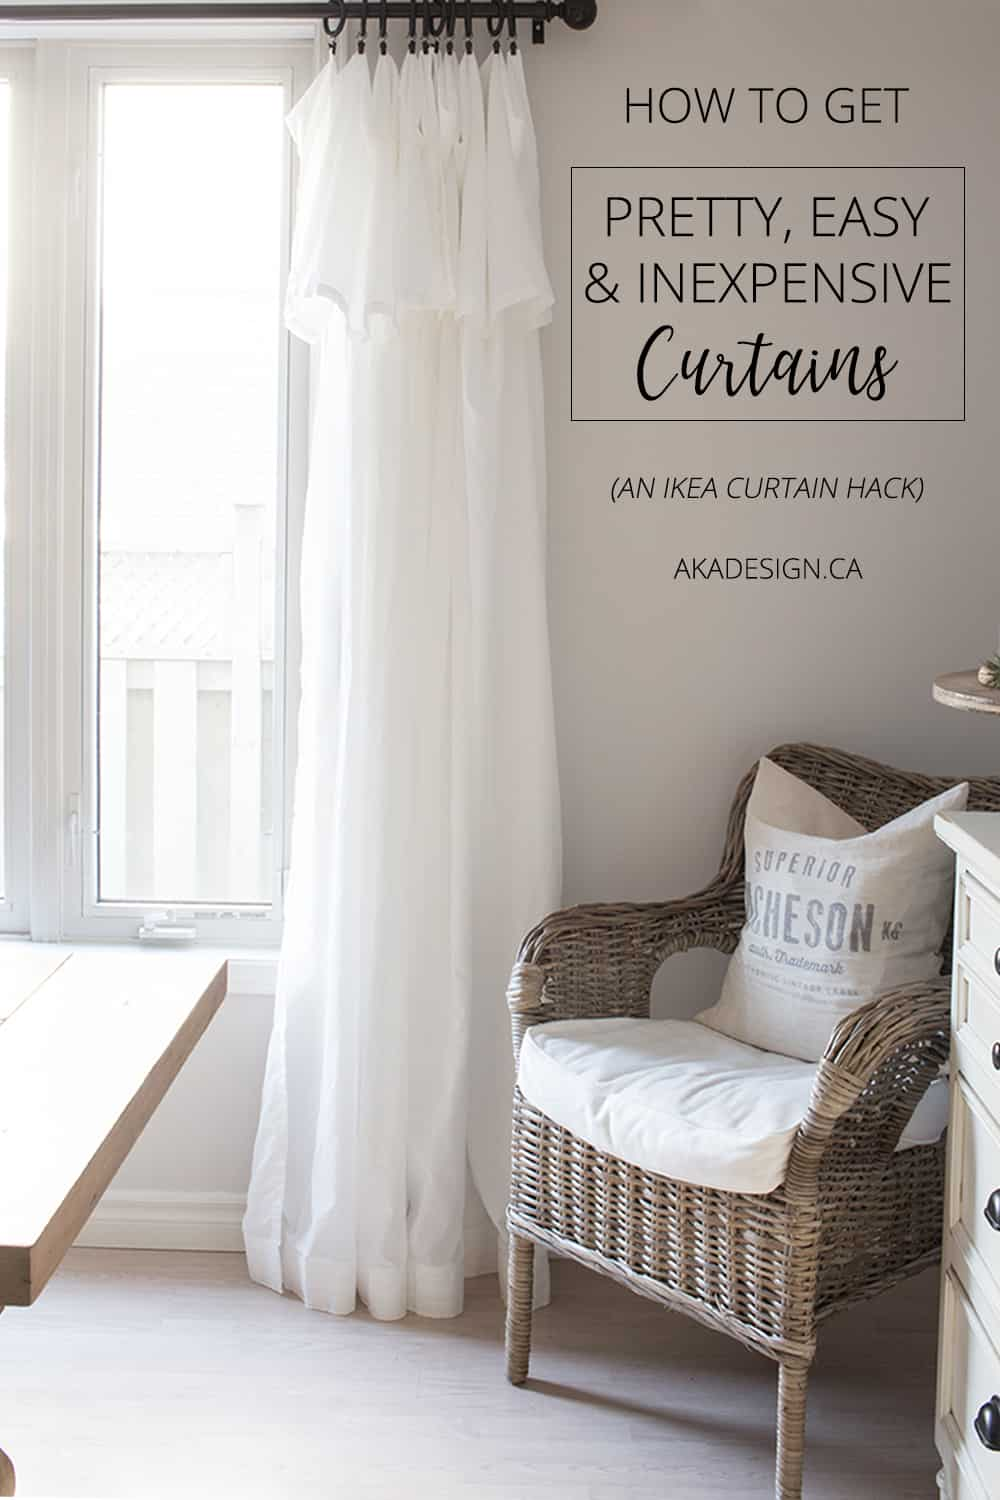 Love these breezy, casual curtains! And they're so versatile and cheap!